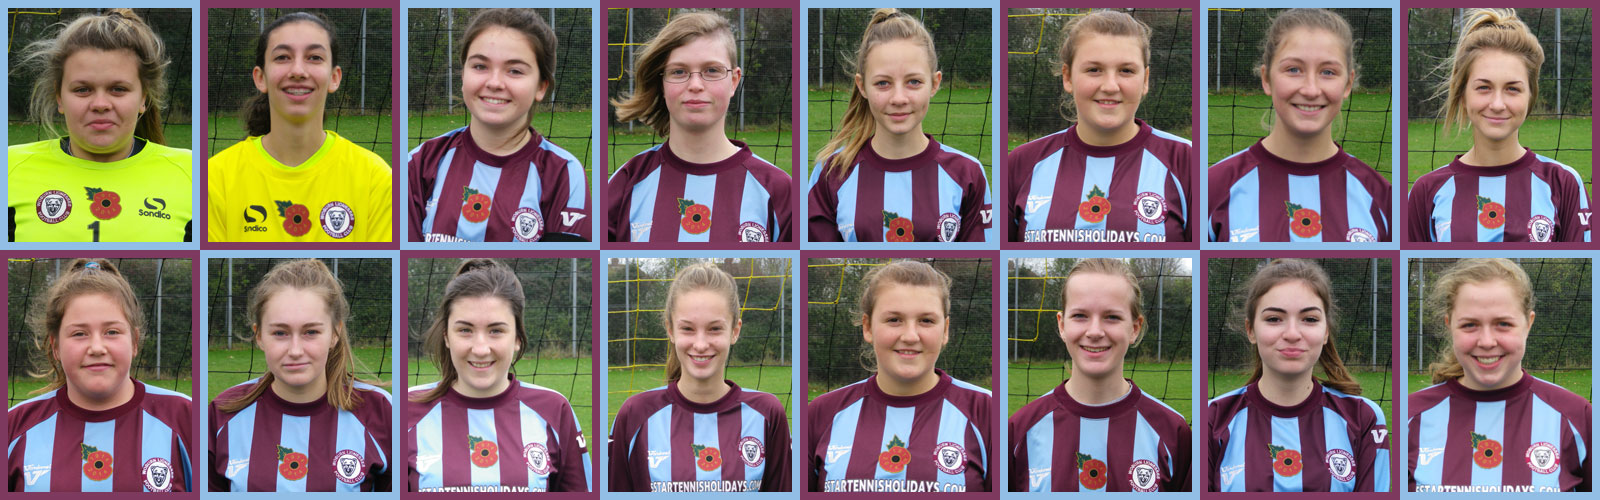 U16 Lionesses in Cup Final post thumbnail image